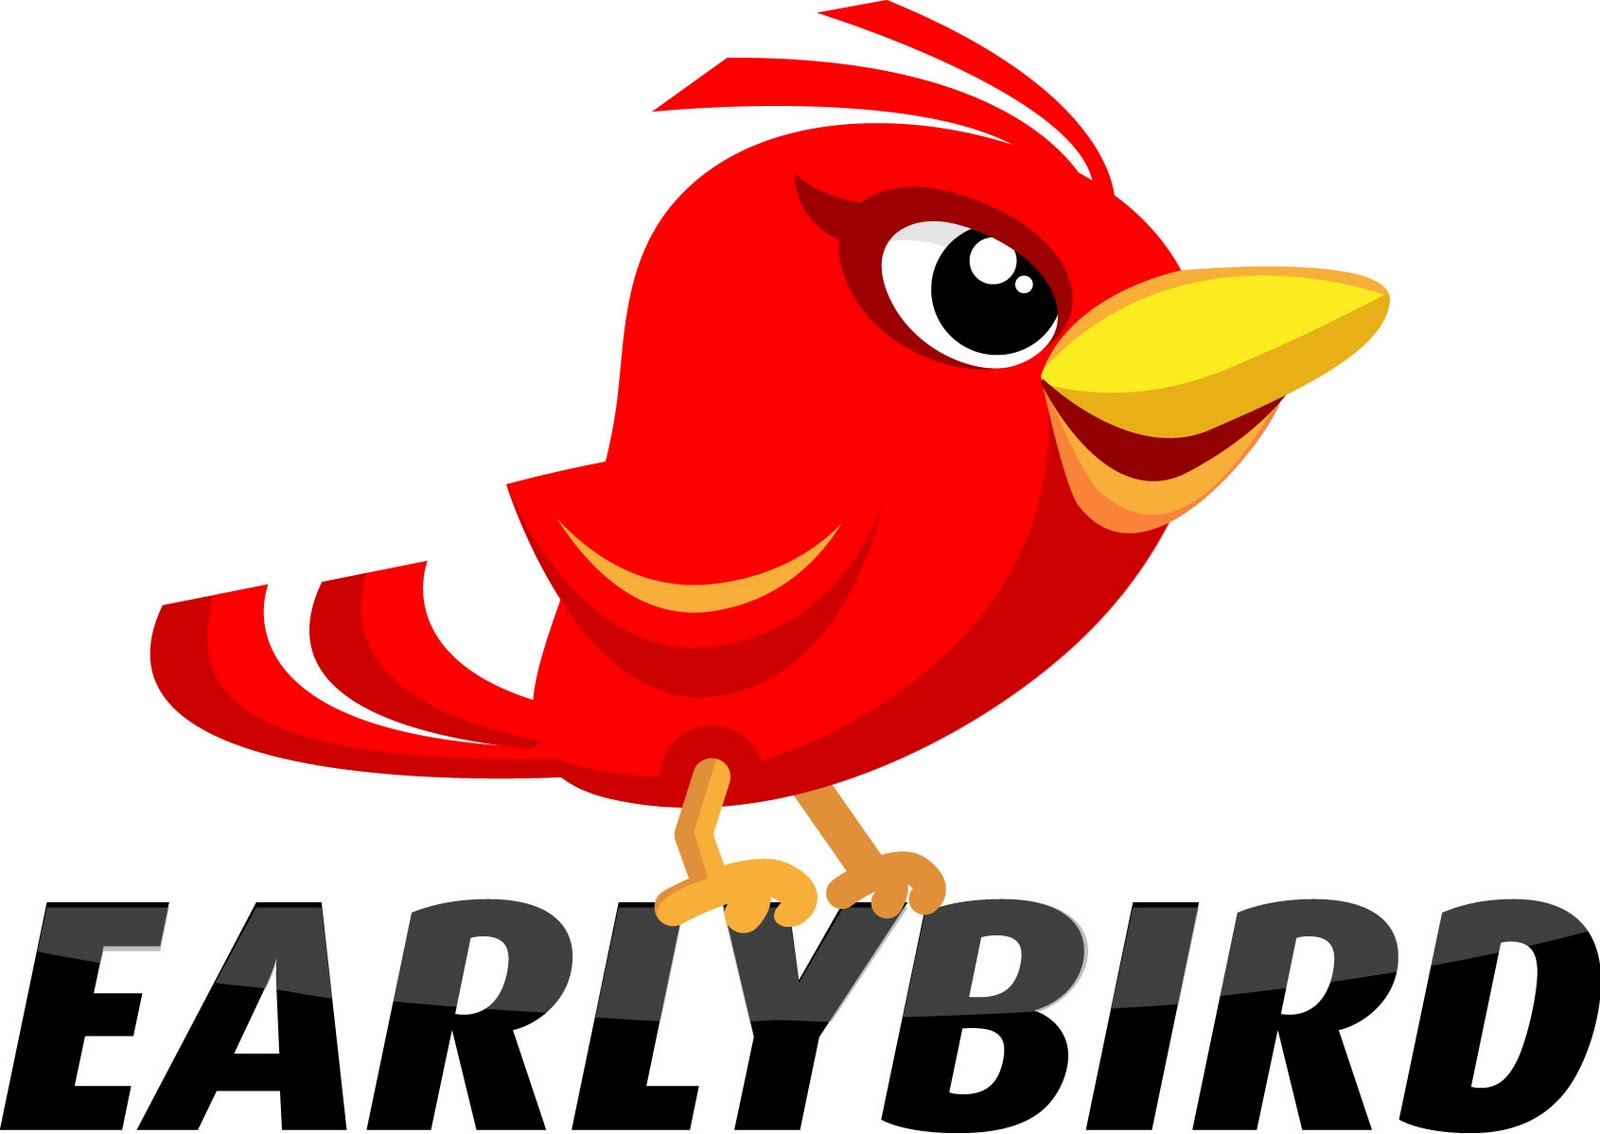 1600x1134 8d9dc6b24b4127b16a74e362095017a4 Early Bird Clip Art Early Bird